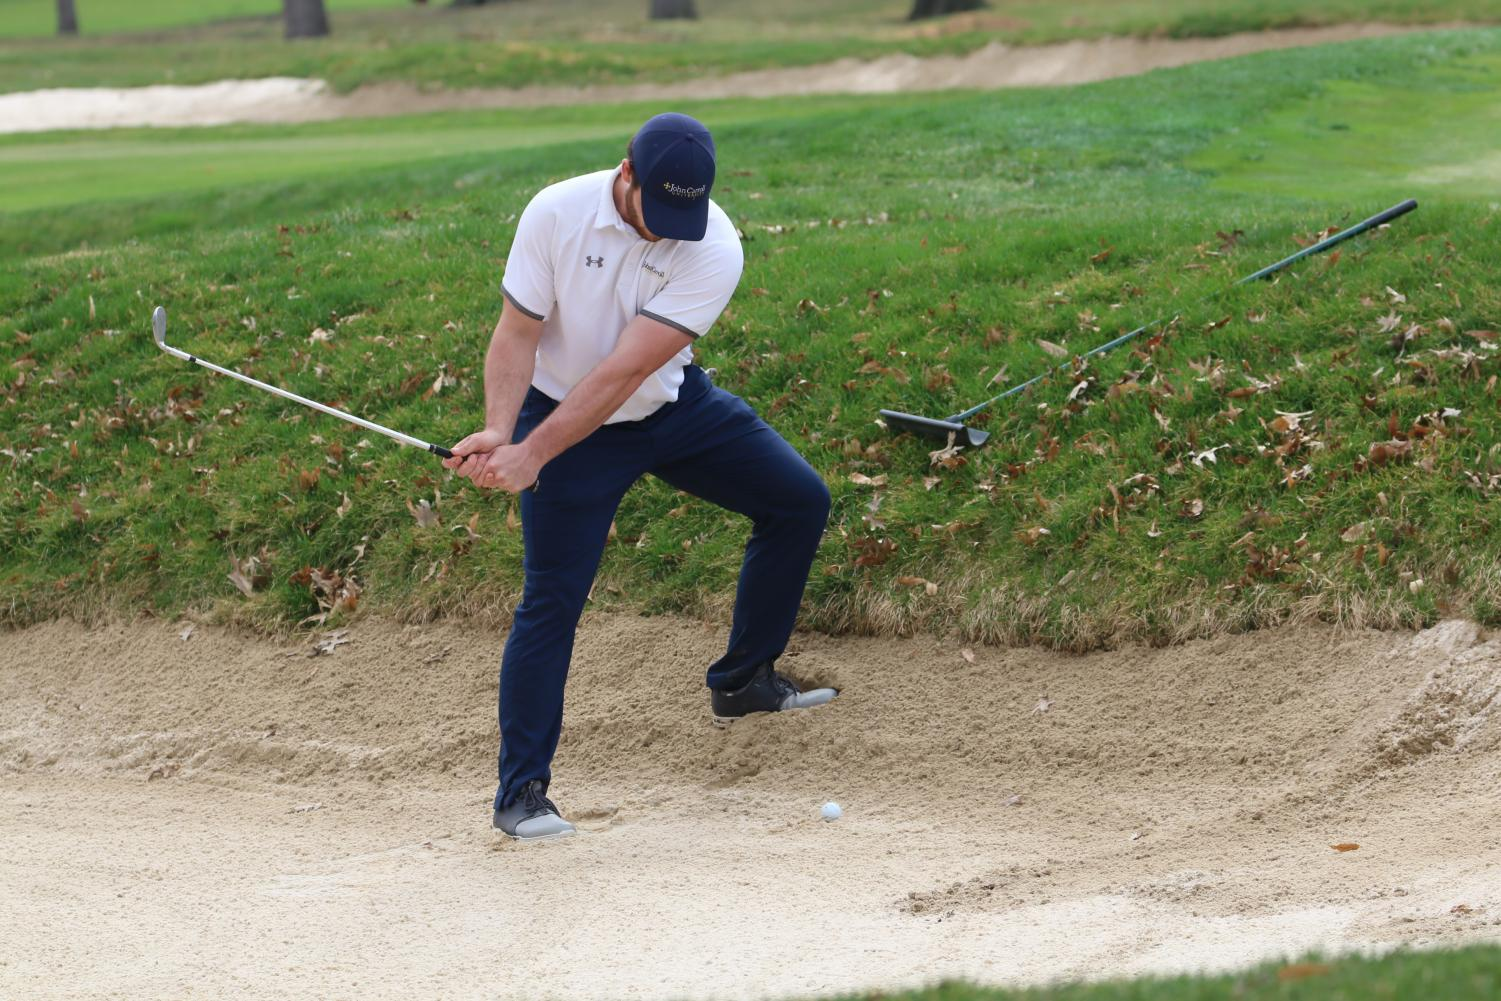 The men's golf team competed for the first time in two weeks at their own Poppa Flowers Invitational this past Monday.